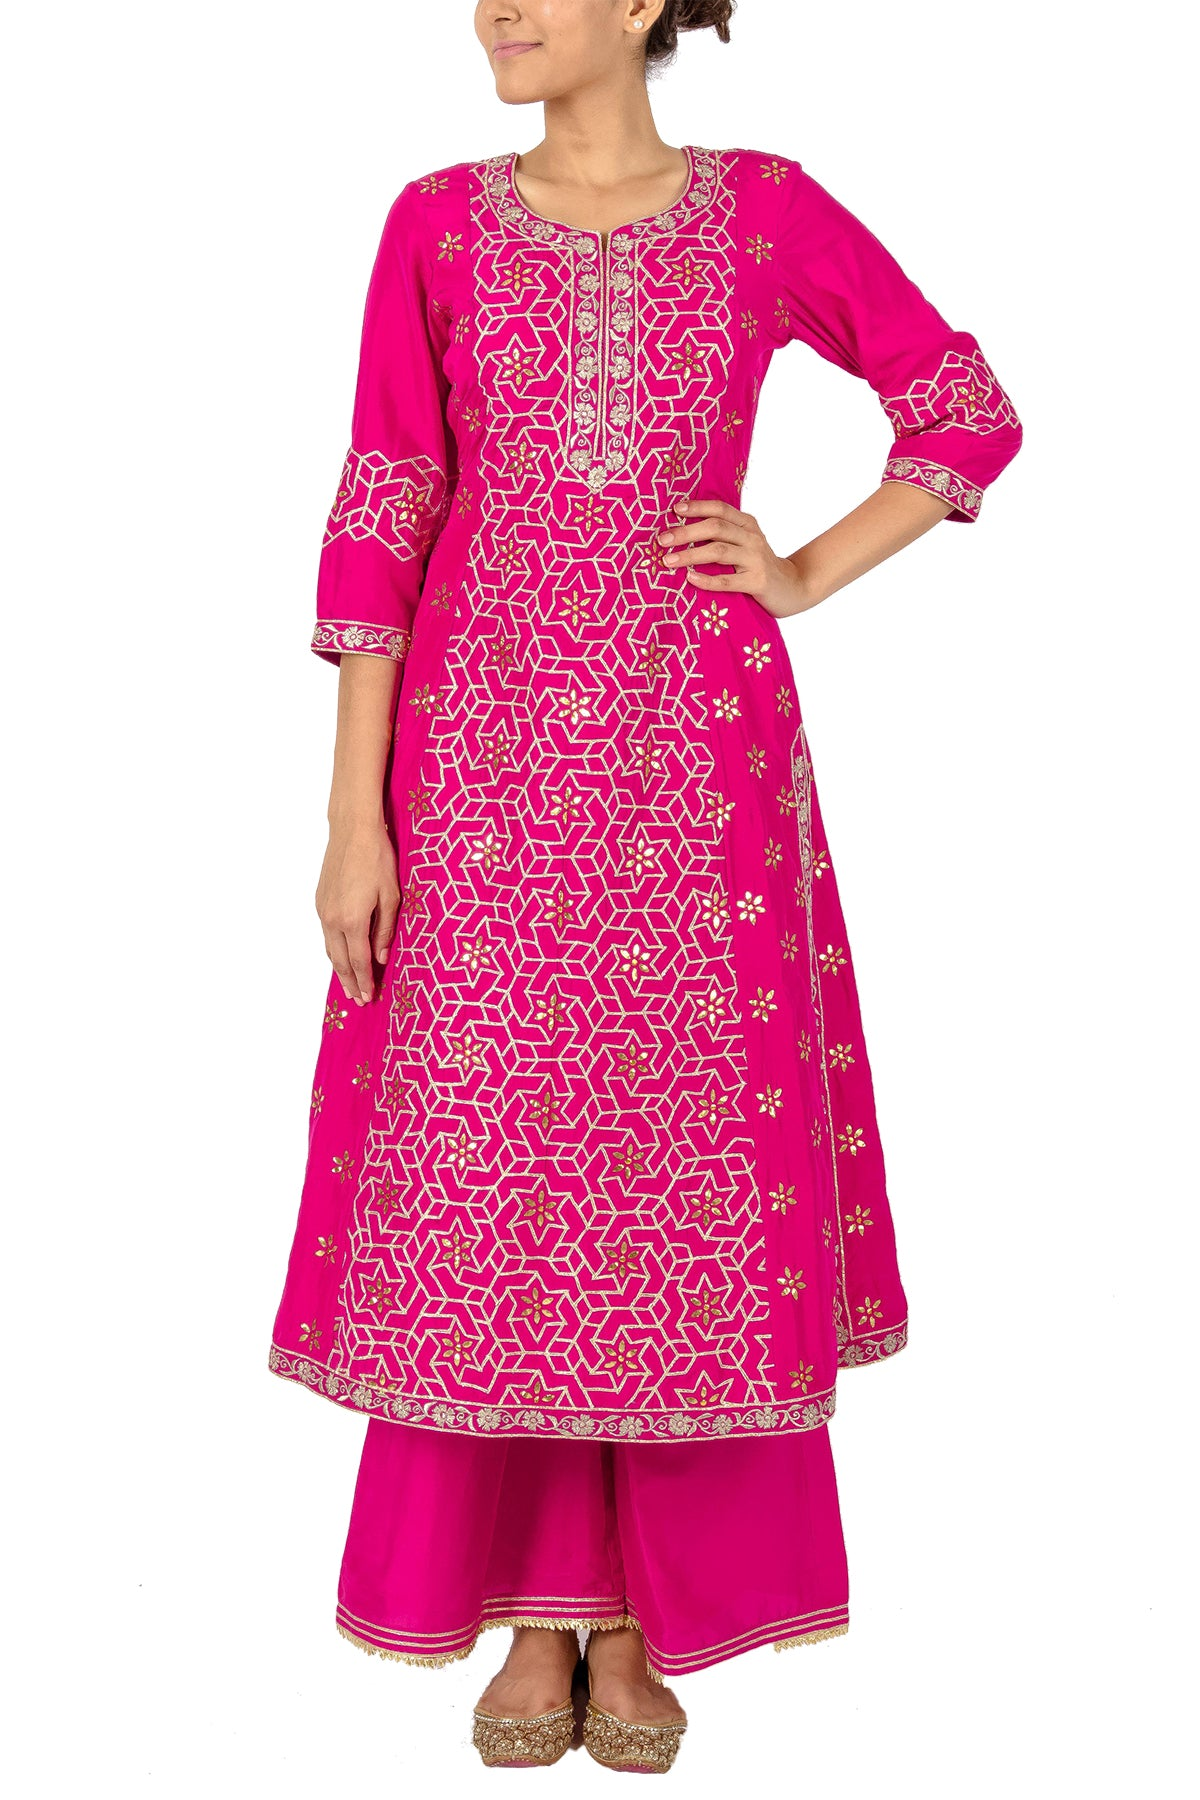 Step into a love triangle and square up your sense of style in this pink suit embroidered with geometric gota patterns. This is paired with embroidery palazzos and a matching dupatta.